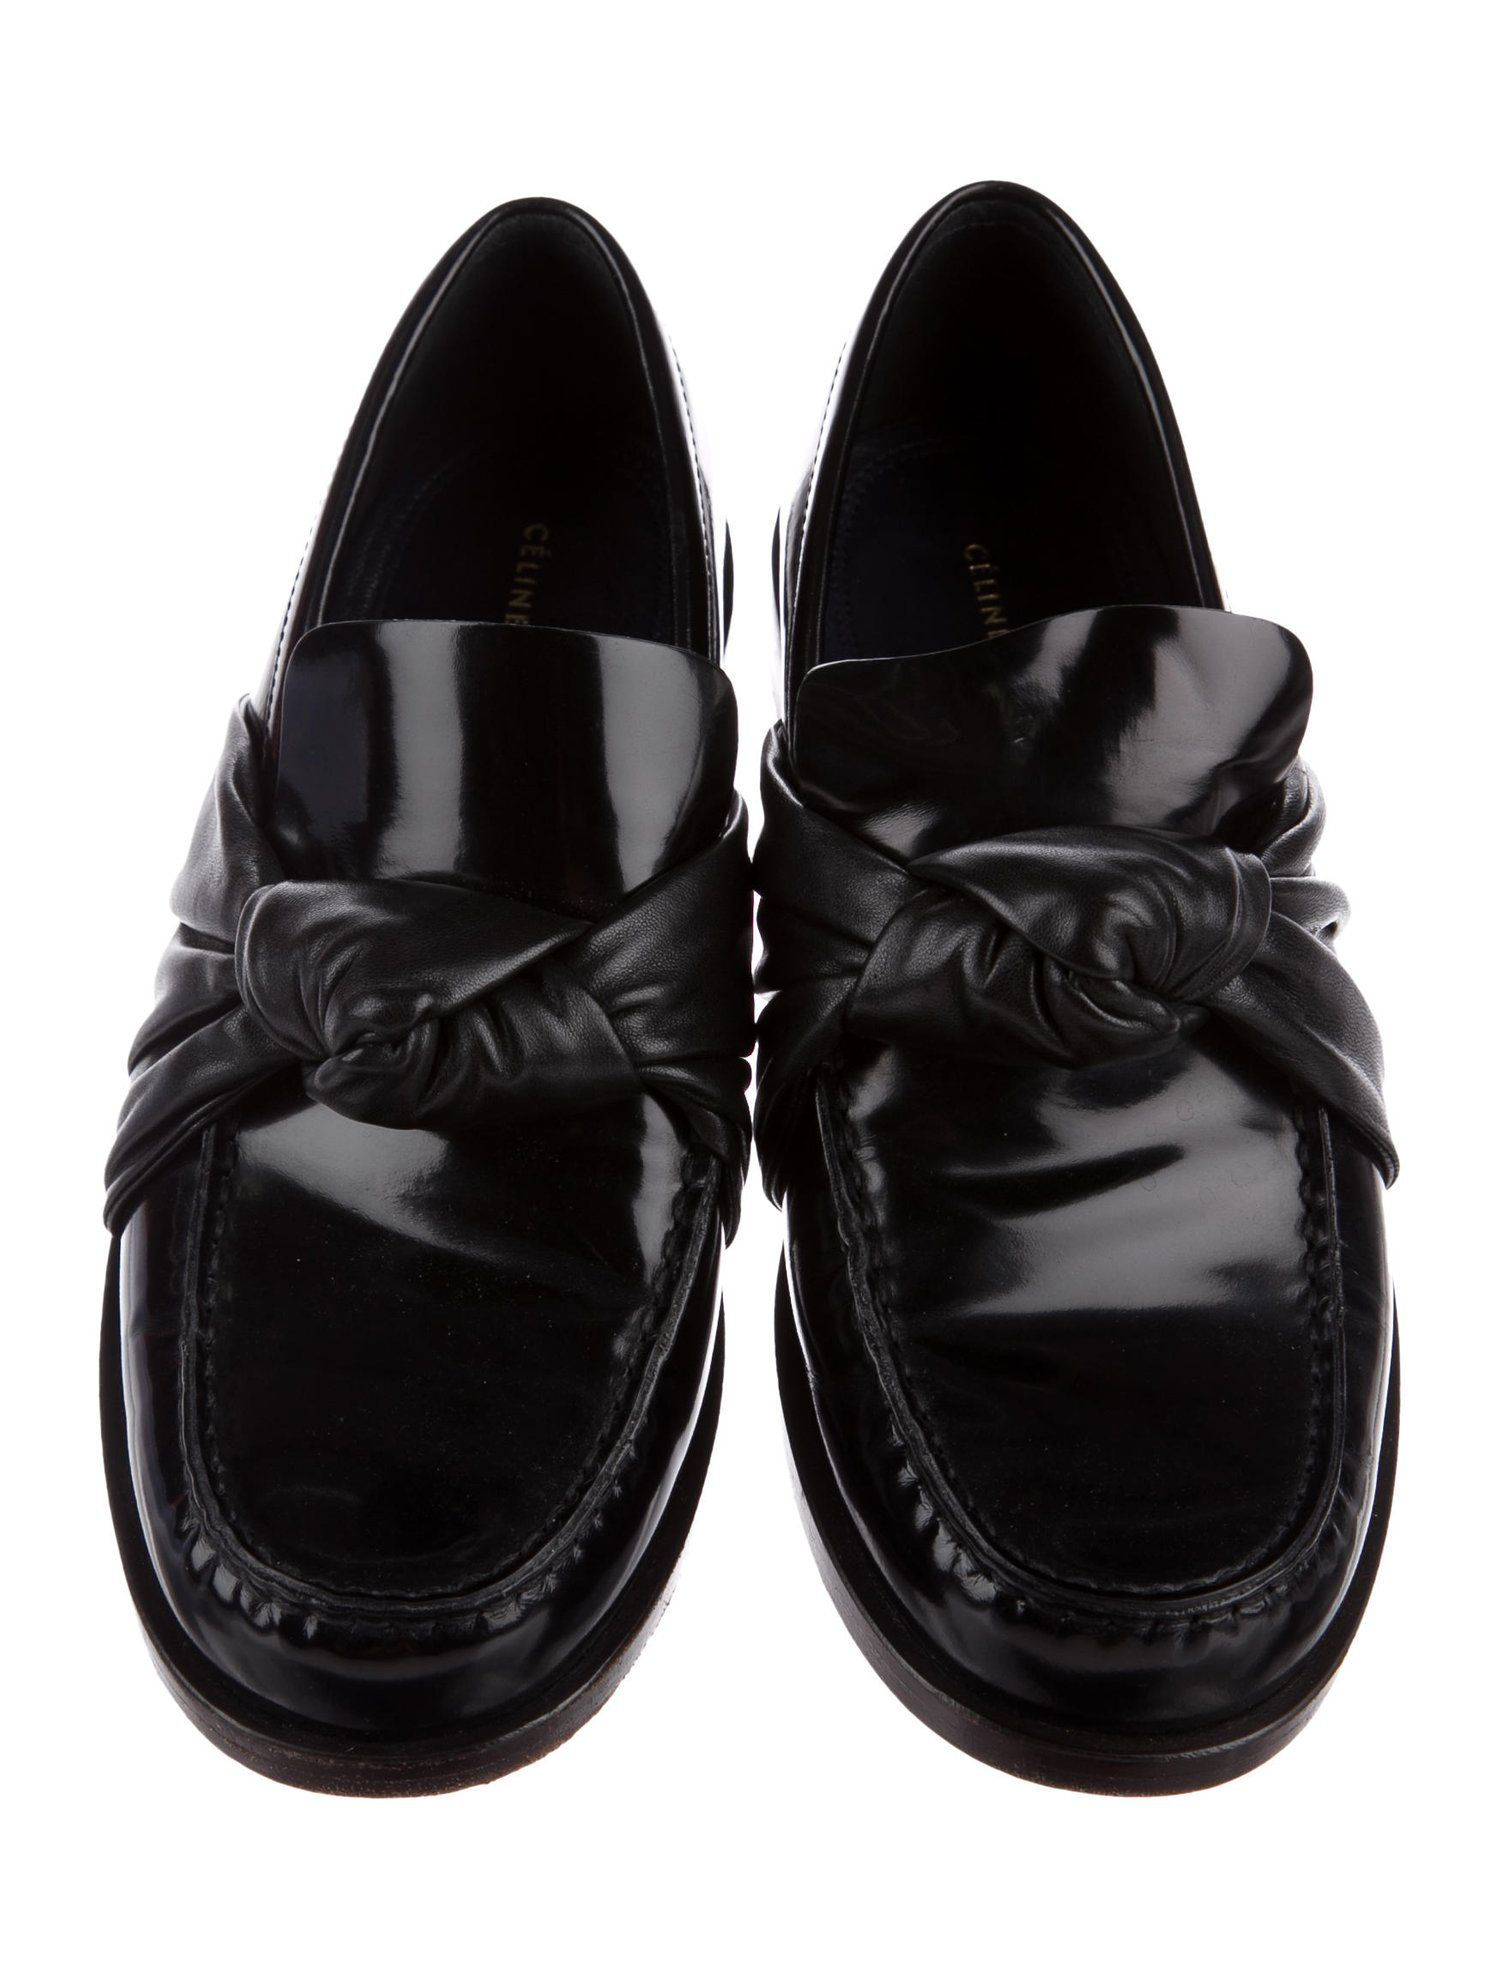 292f877c47e Céline Leather Knot Loafers - Shoes - CEL58846